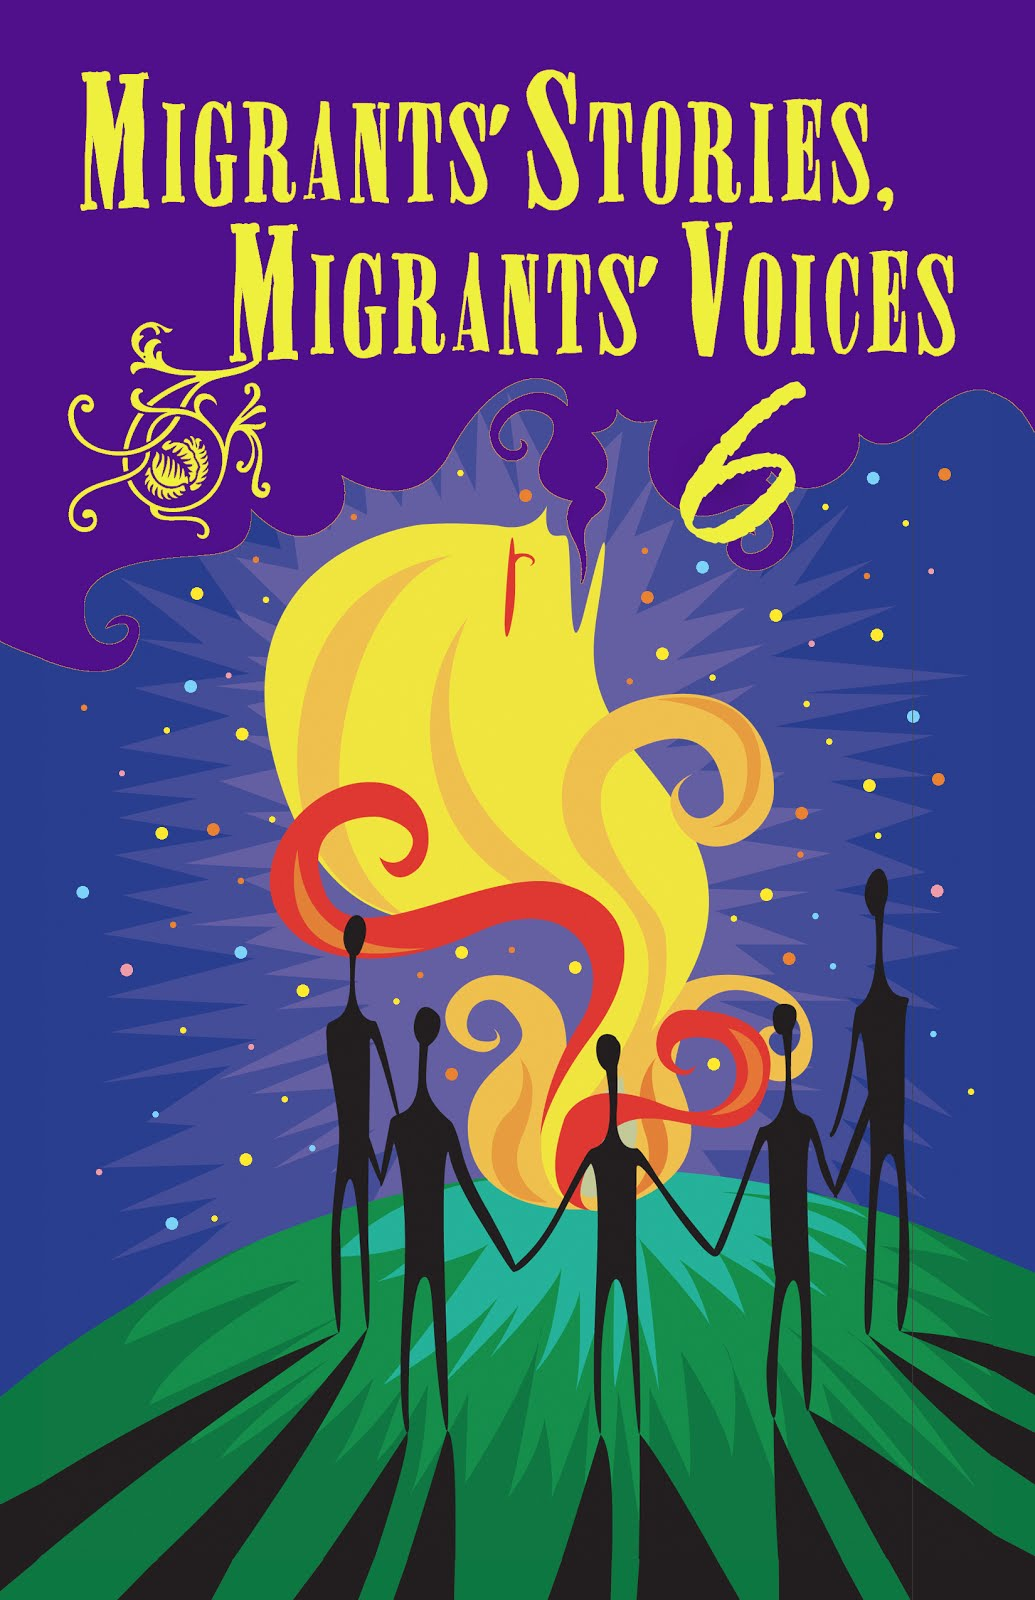 Migrants' Stories, Migrants' Voices 6